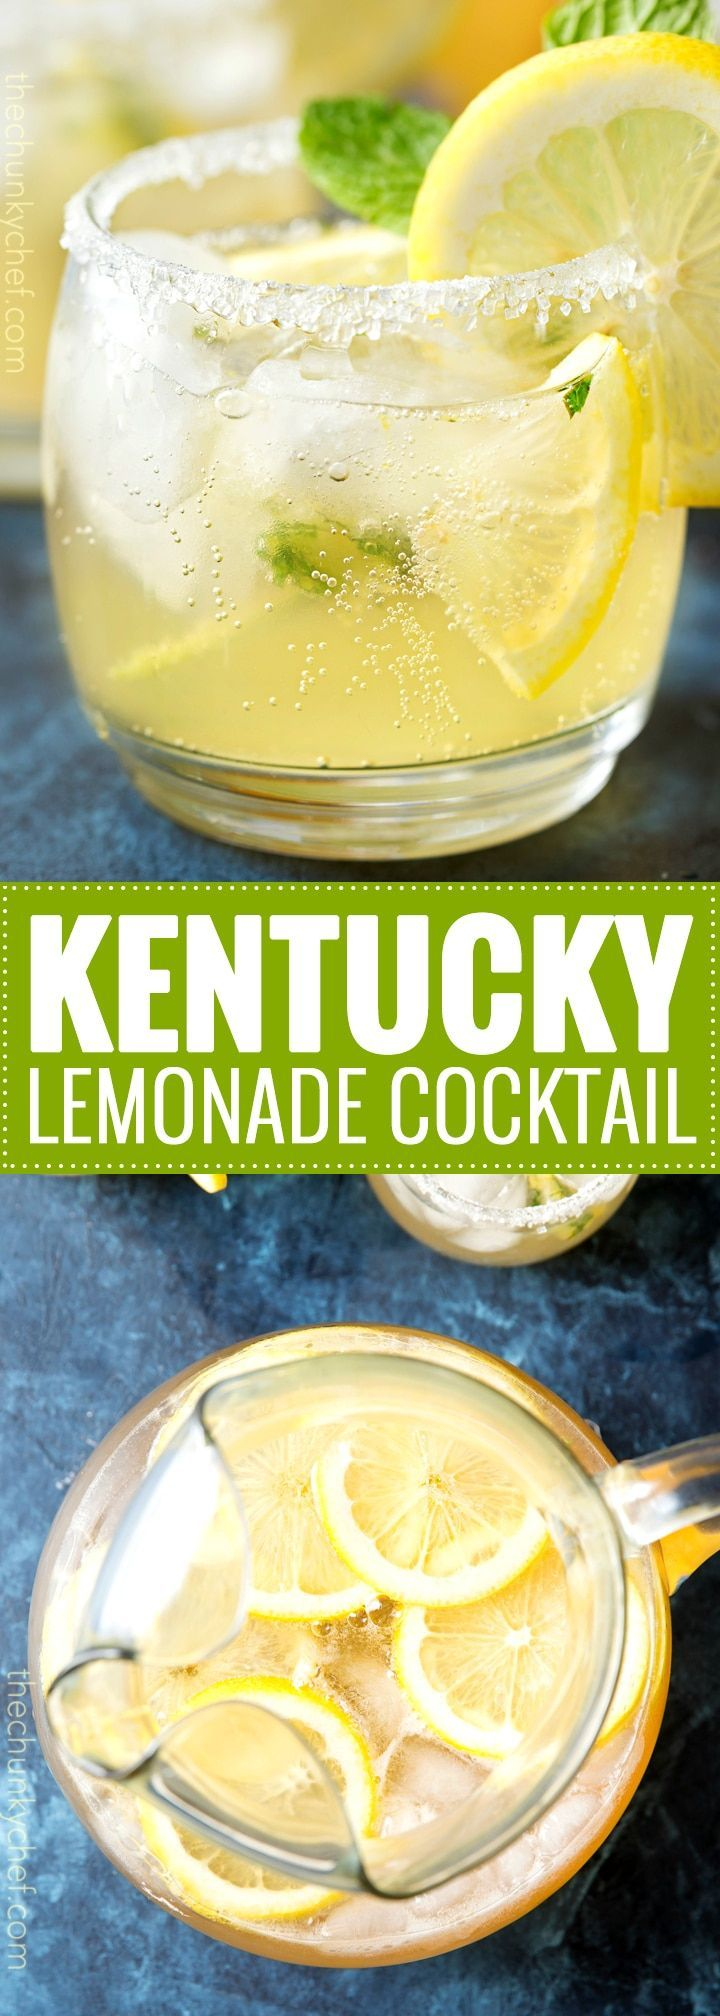 Kentucky Lemonade Cocktail | Sweet, tart, and refreshing with a bourbon kick, this Kentucky lemonade cocktail is everything you could want in a drink. Sip your way into warmer weather with this easy to make cocktail... perfect for a party! | #lemonade #bourbon #cocktail